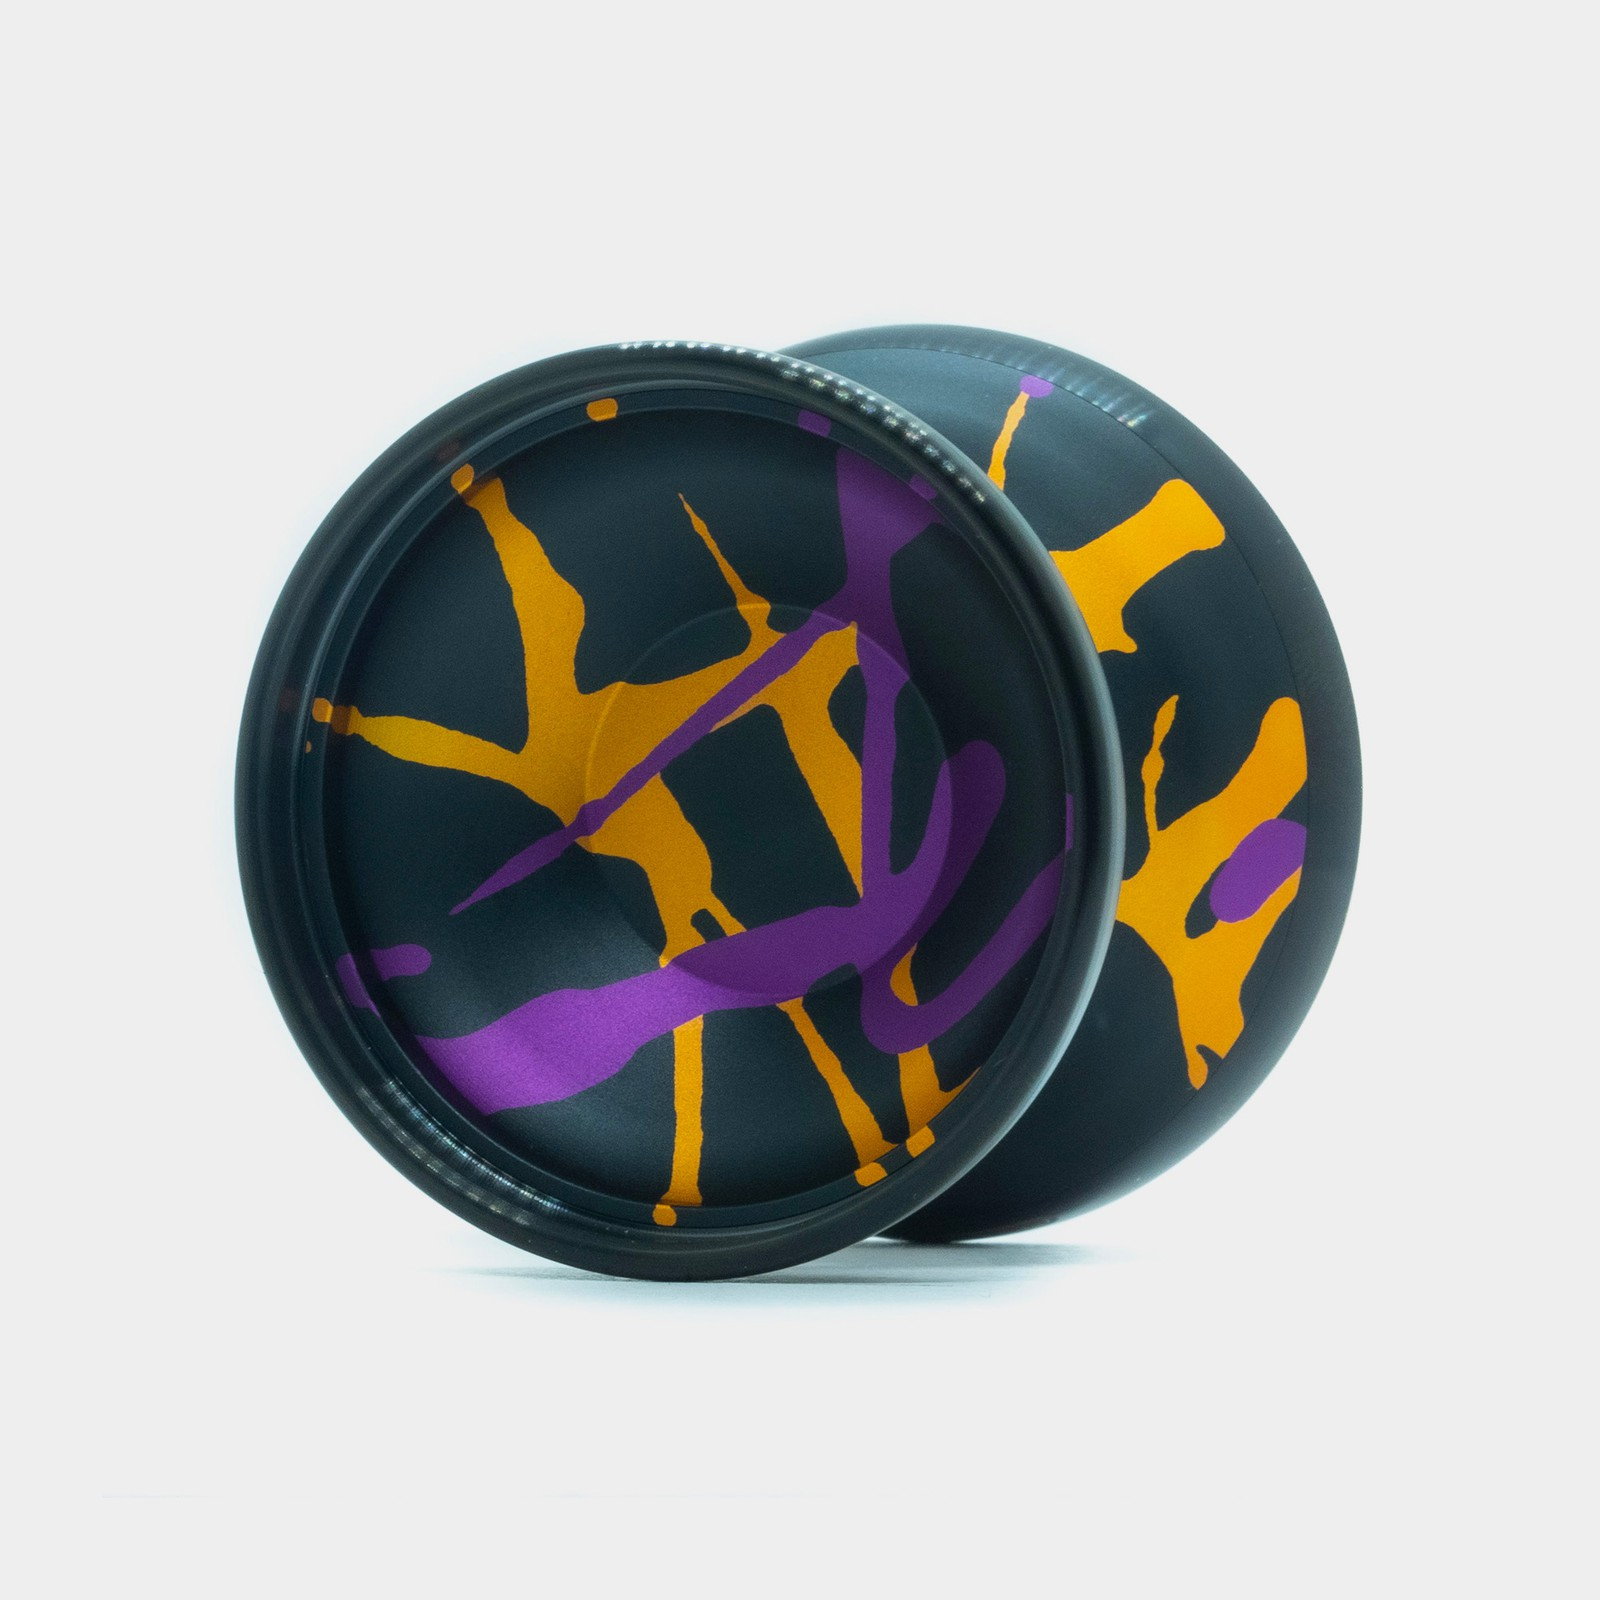 Grasshopper GTX yo-yo in Black / Gold / Purple by Duncan